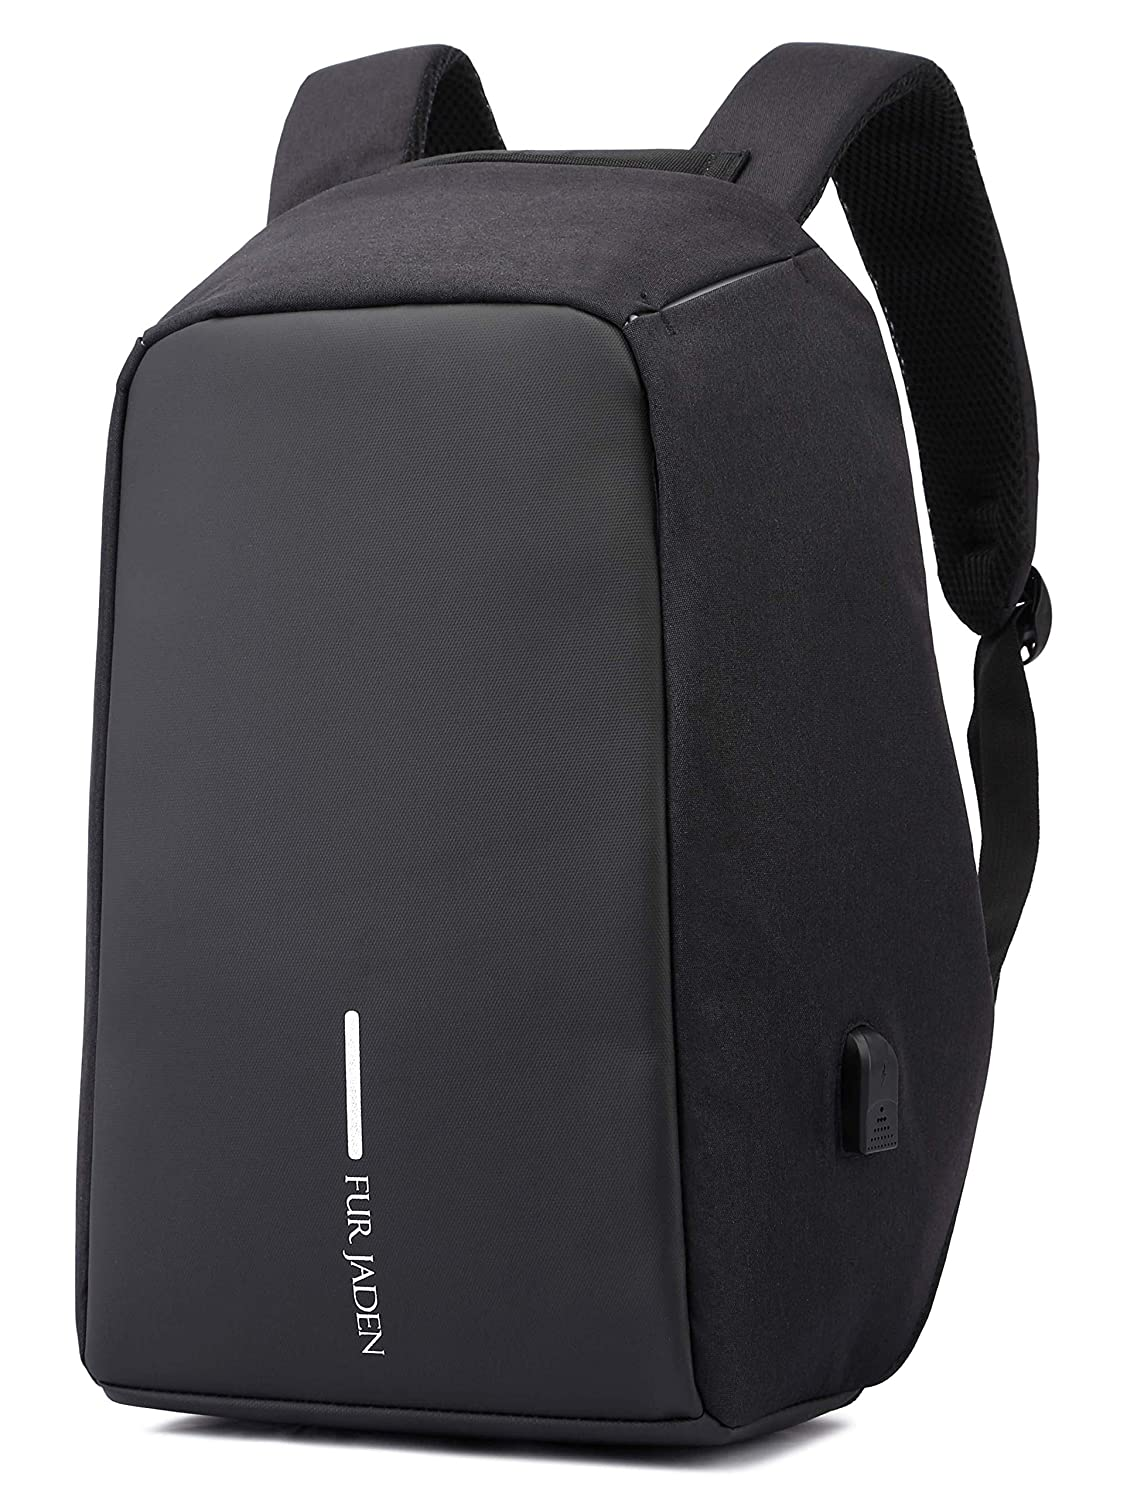 Fur Jaden 15 Ltrs Black Anti Theft Waterproof Backpack